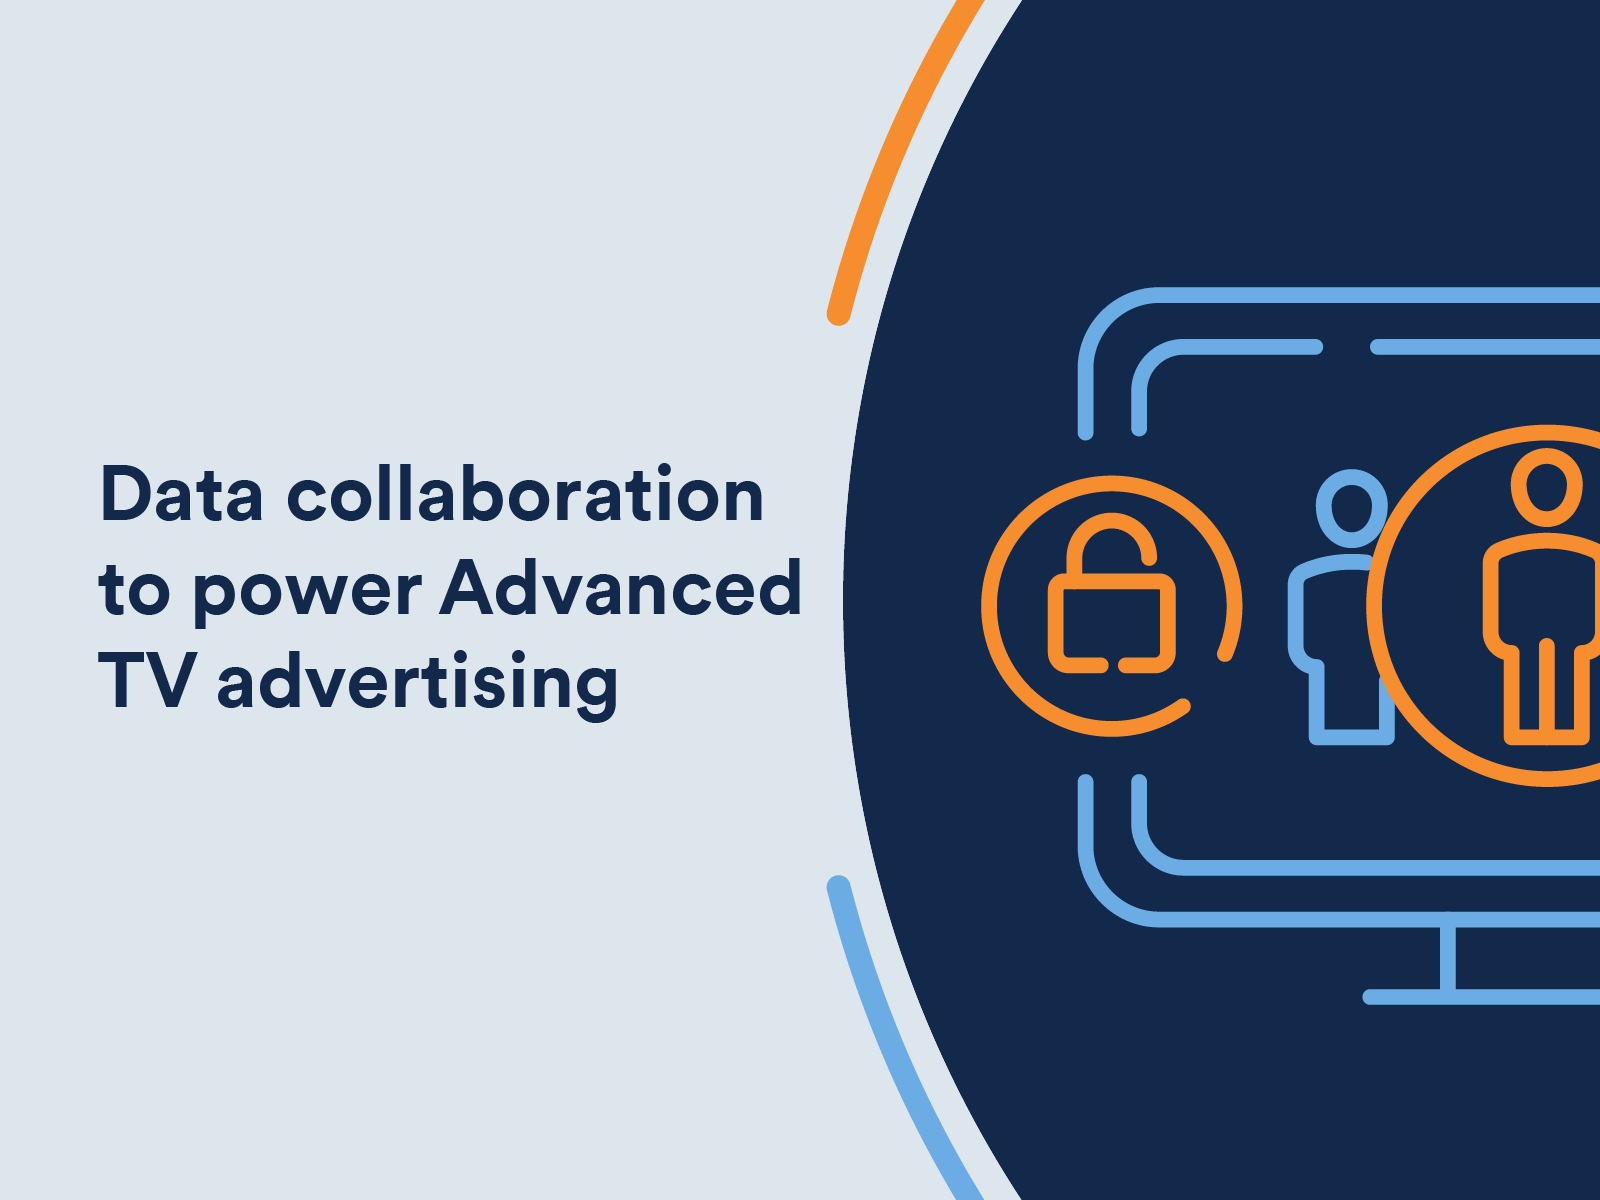 Data collaboration to power Advanced TV advertising